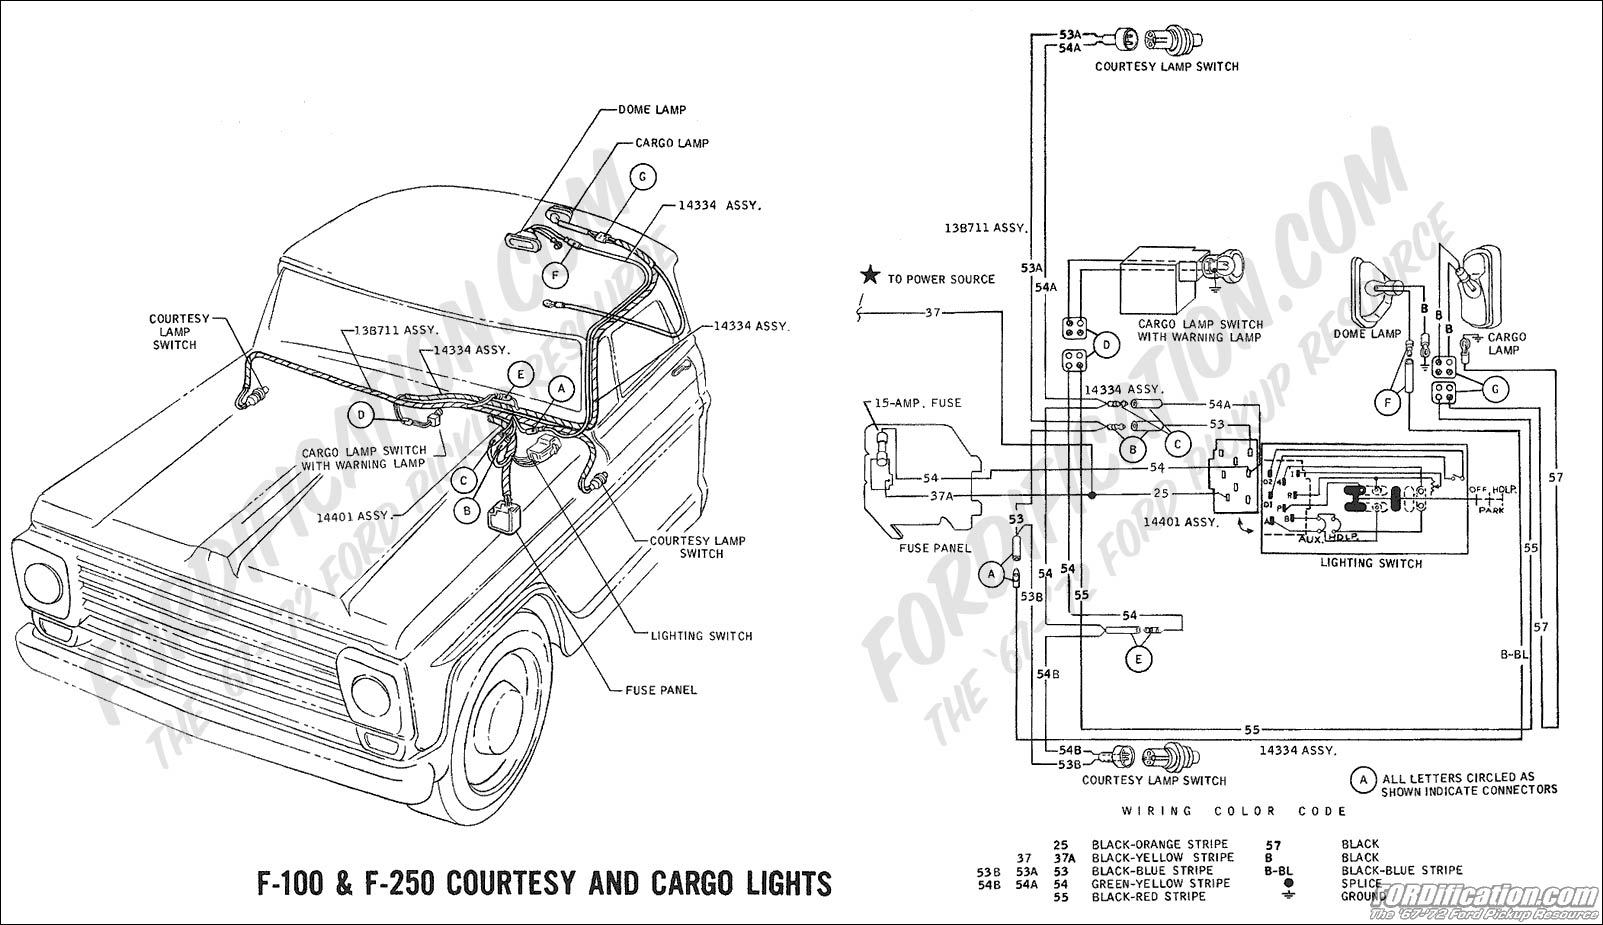 1969 Ford F250 Wiring Diagram - Machine Repair Manual Fan Wiring Diagram For F on